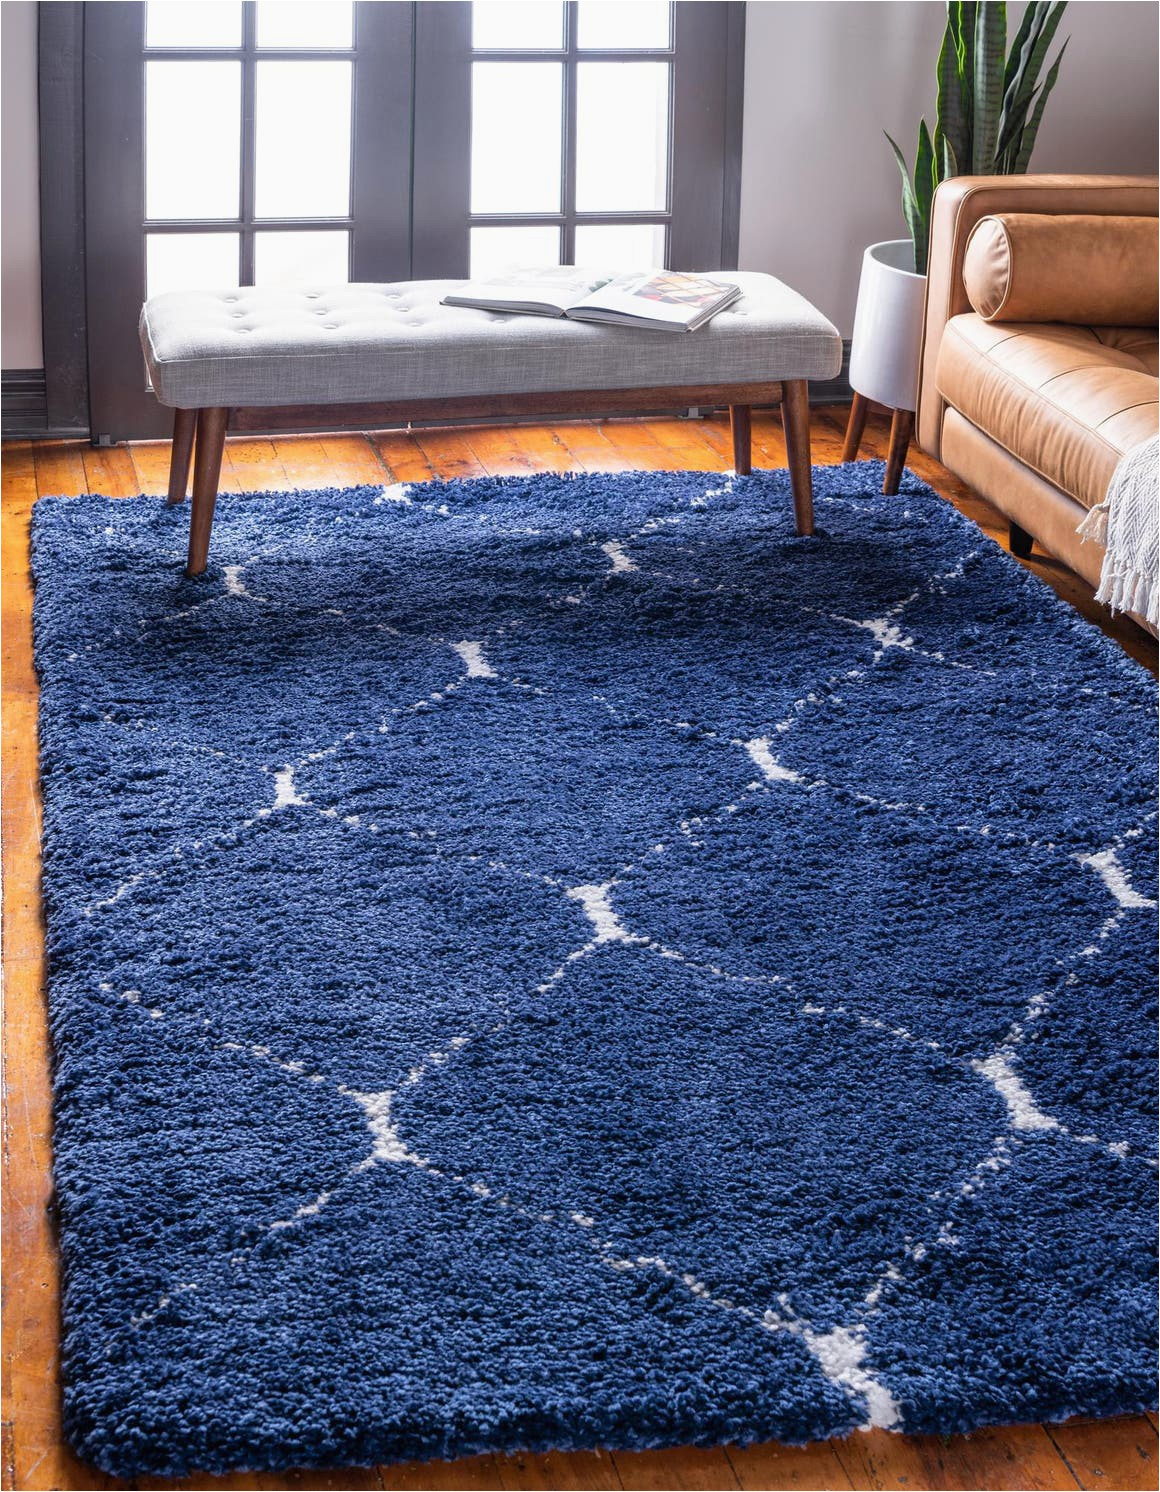 4 X 6 Navy Blue Rug 4 X 6 Marrakesh Shag Rug